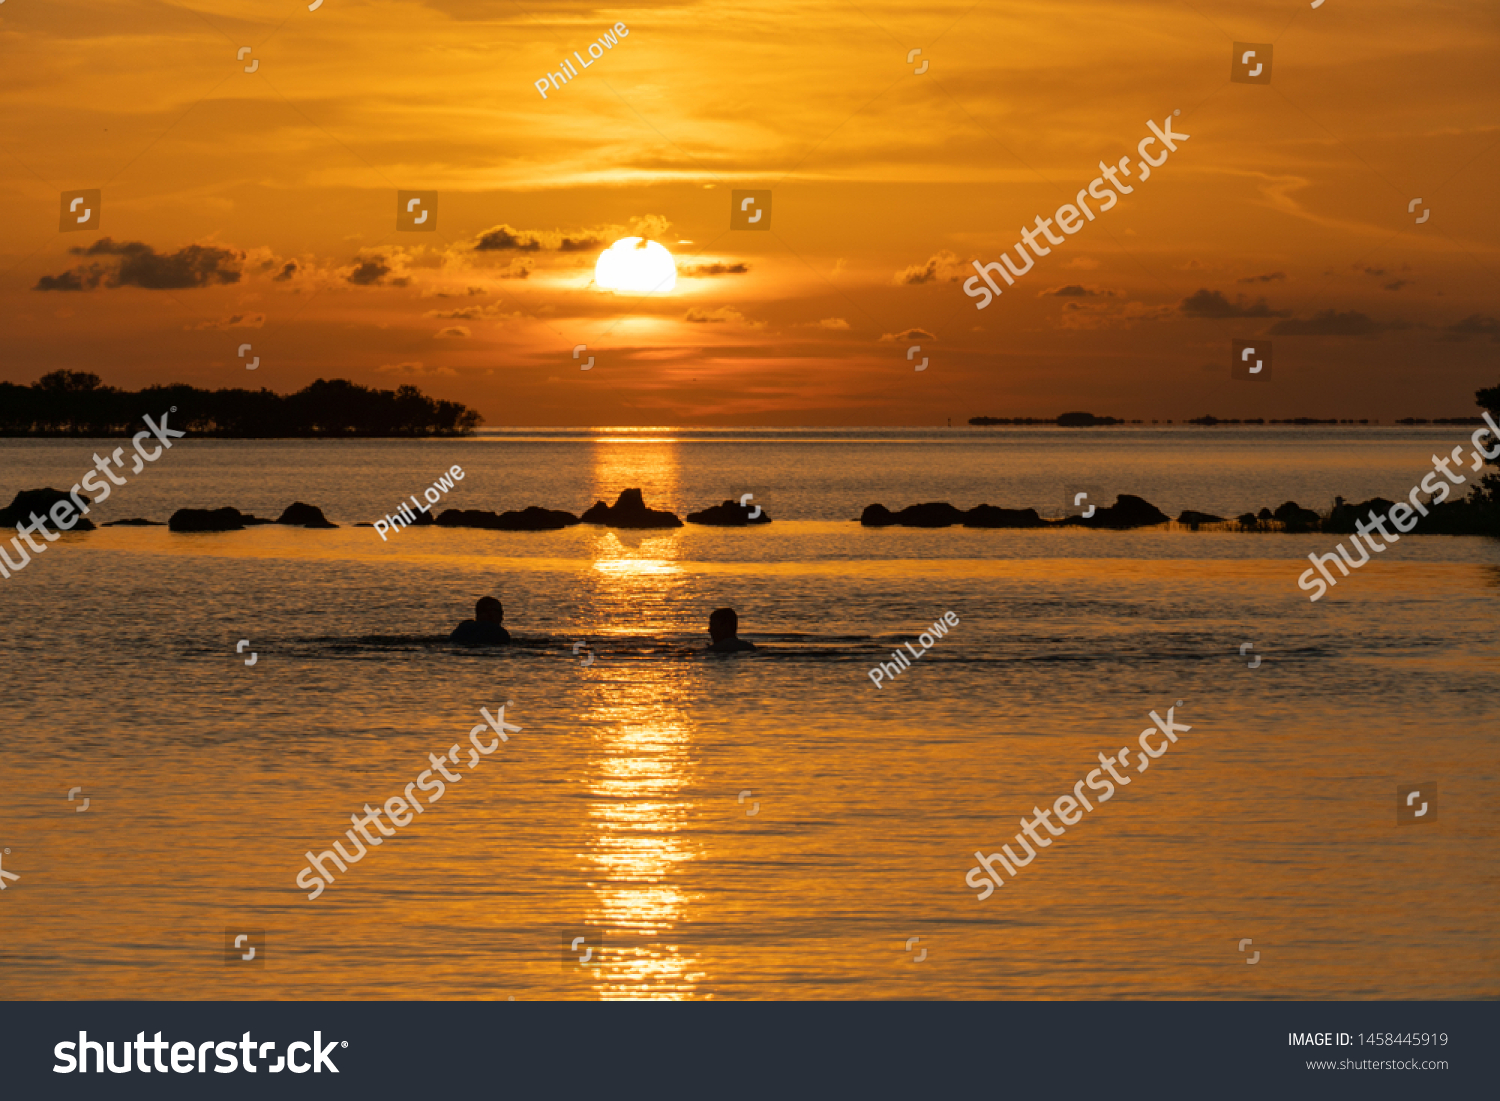 stock-photo-a-beautiful-gulf-of-mexico-s